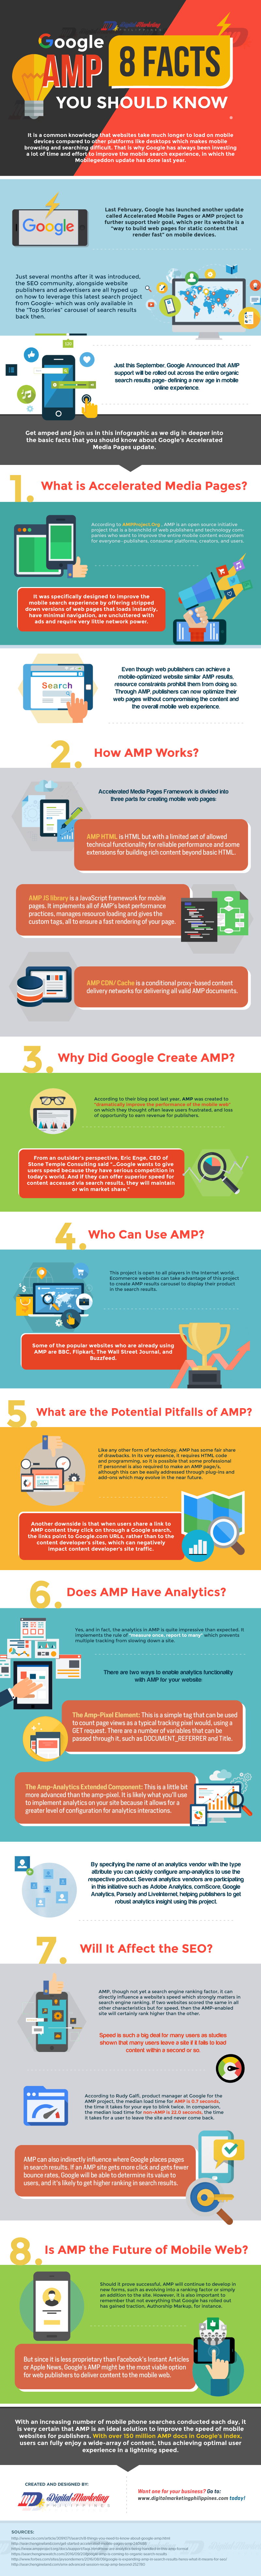 google_amp_-_8_facts_you_should_know_hd